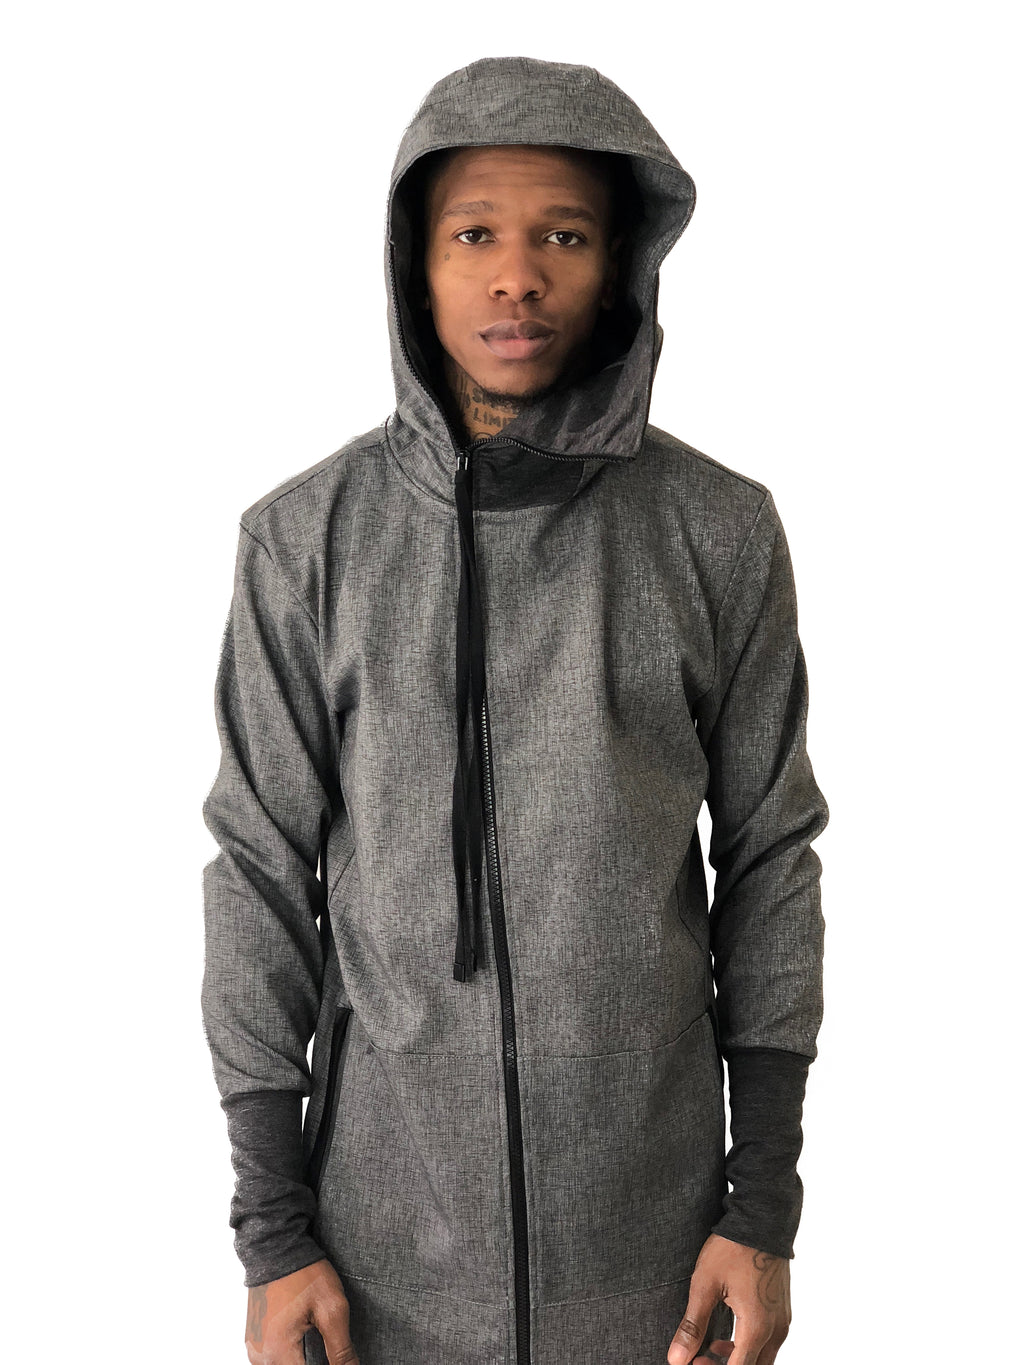 Men Jacket Hooded Line Cotton Gray by Ashes To Dust - Brit Boss